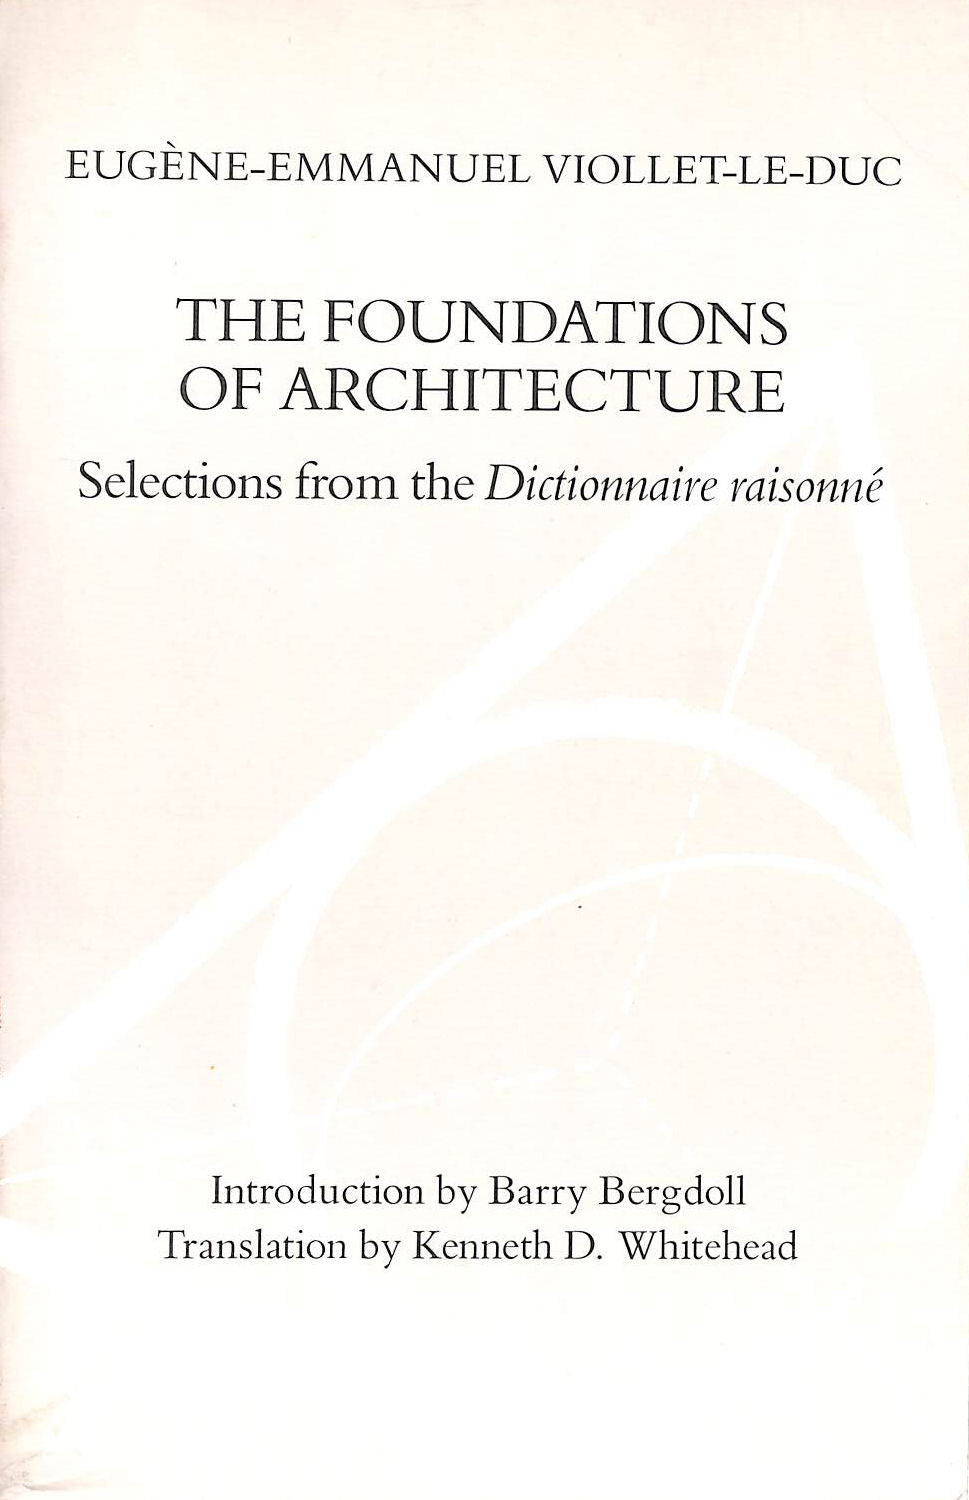 Image for The Foundations of Architecture: Selections from the Dictionnaire Raisonne